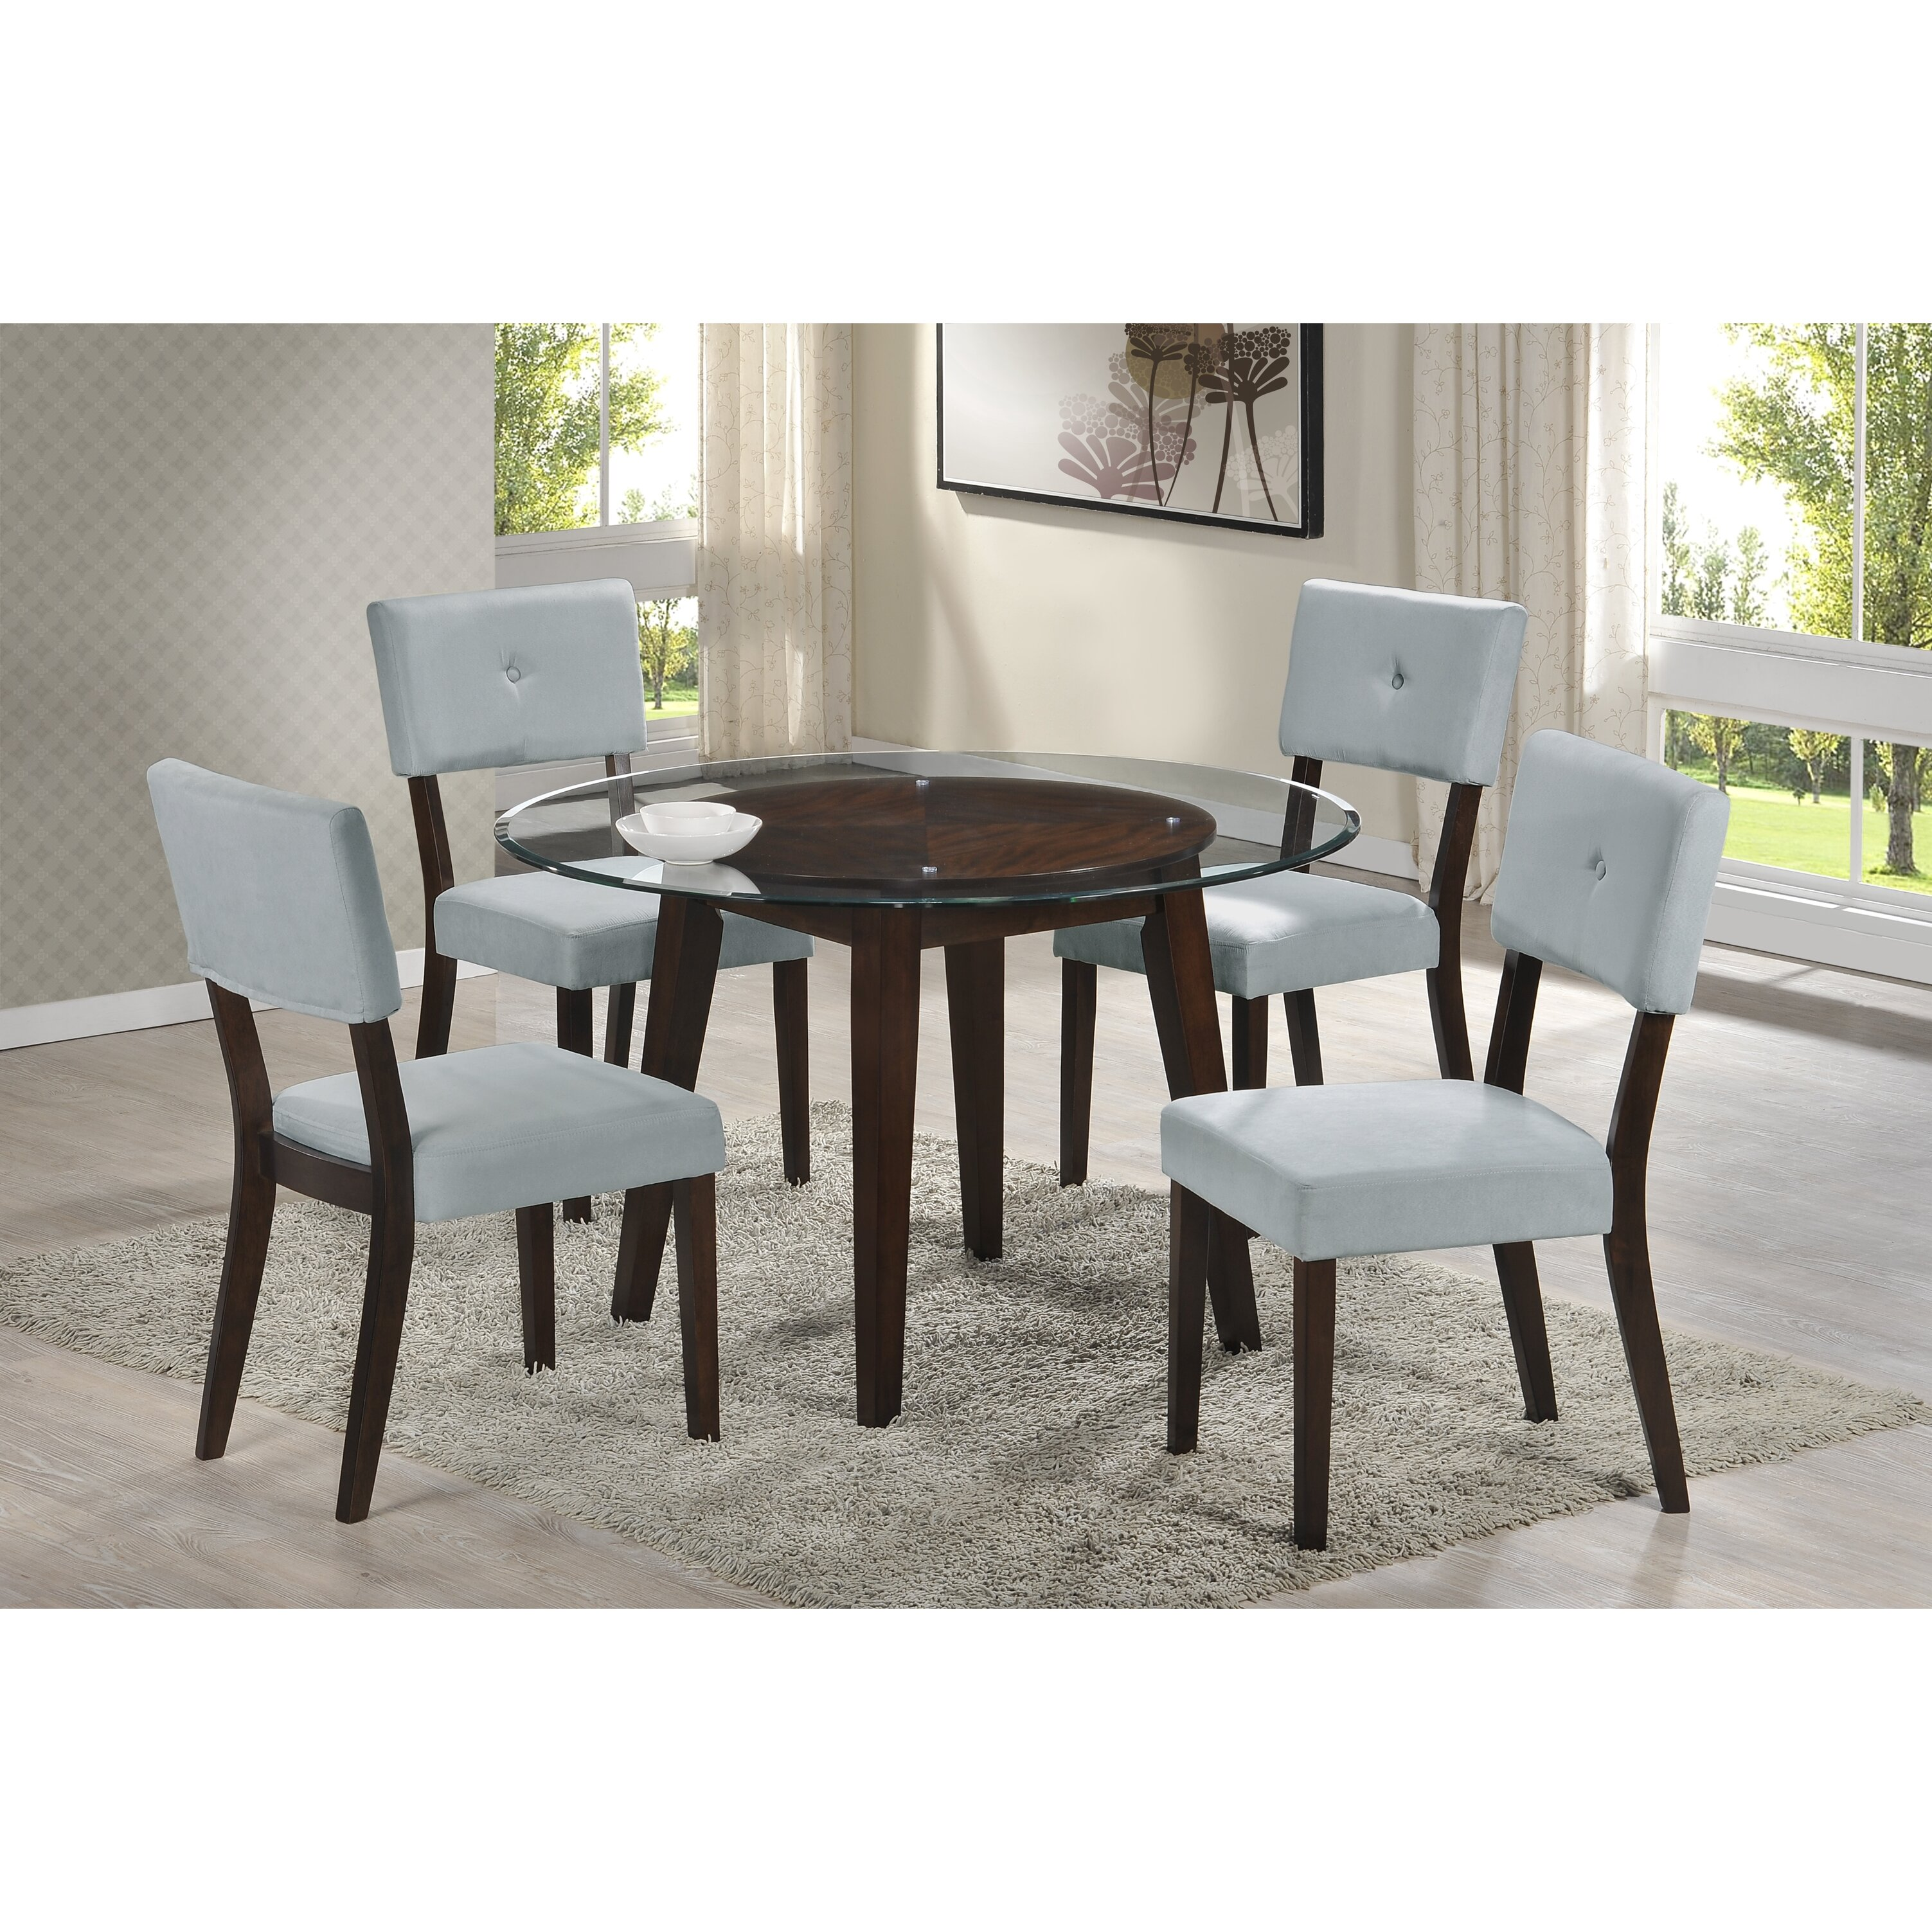 Wildon Home Wegman 5 Piece Dining Set Reviews Wayfair